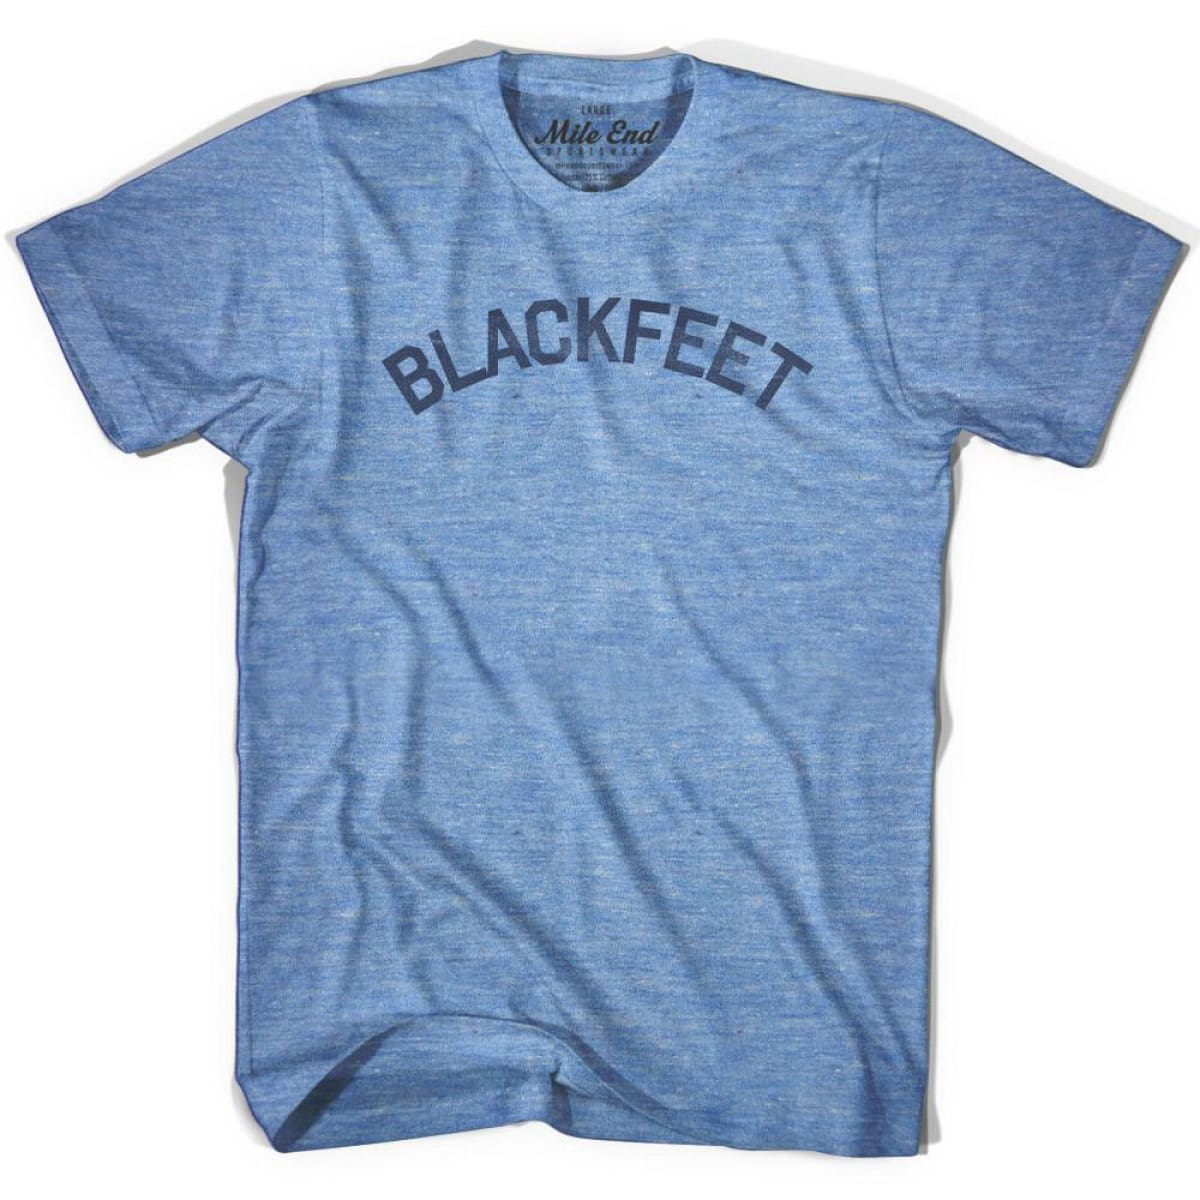 Blackfeet City Vintage T-shirt - Athletic Blue / Adult X-Small - Mile End City